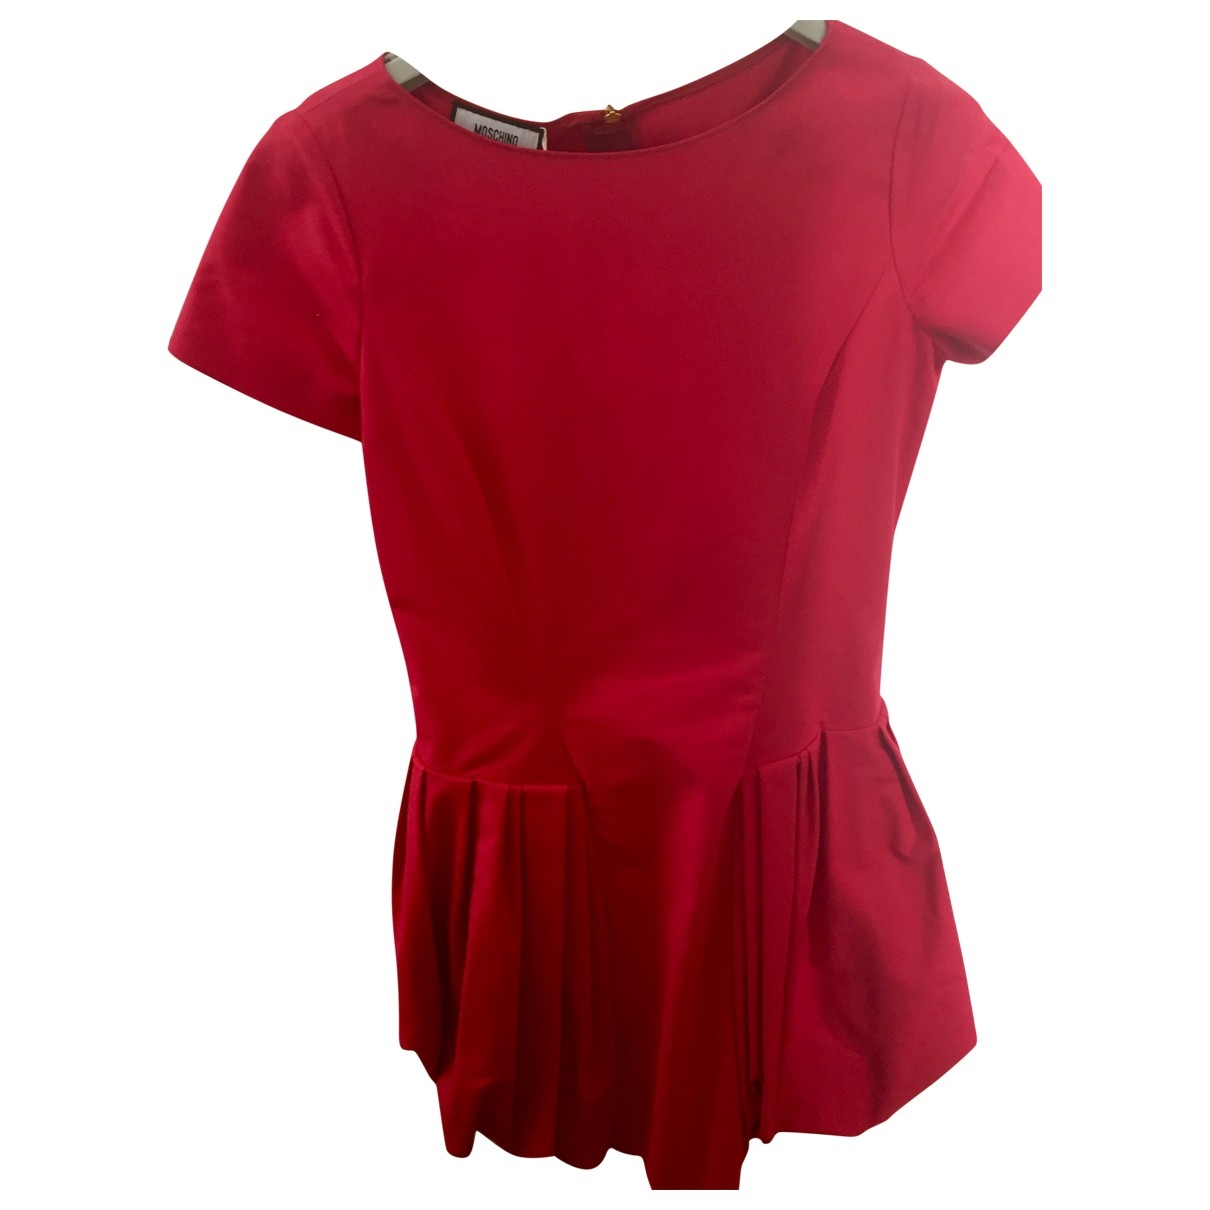 Moschino \N Red Cotton dress for Women 42 IT